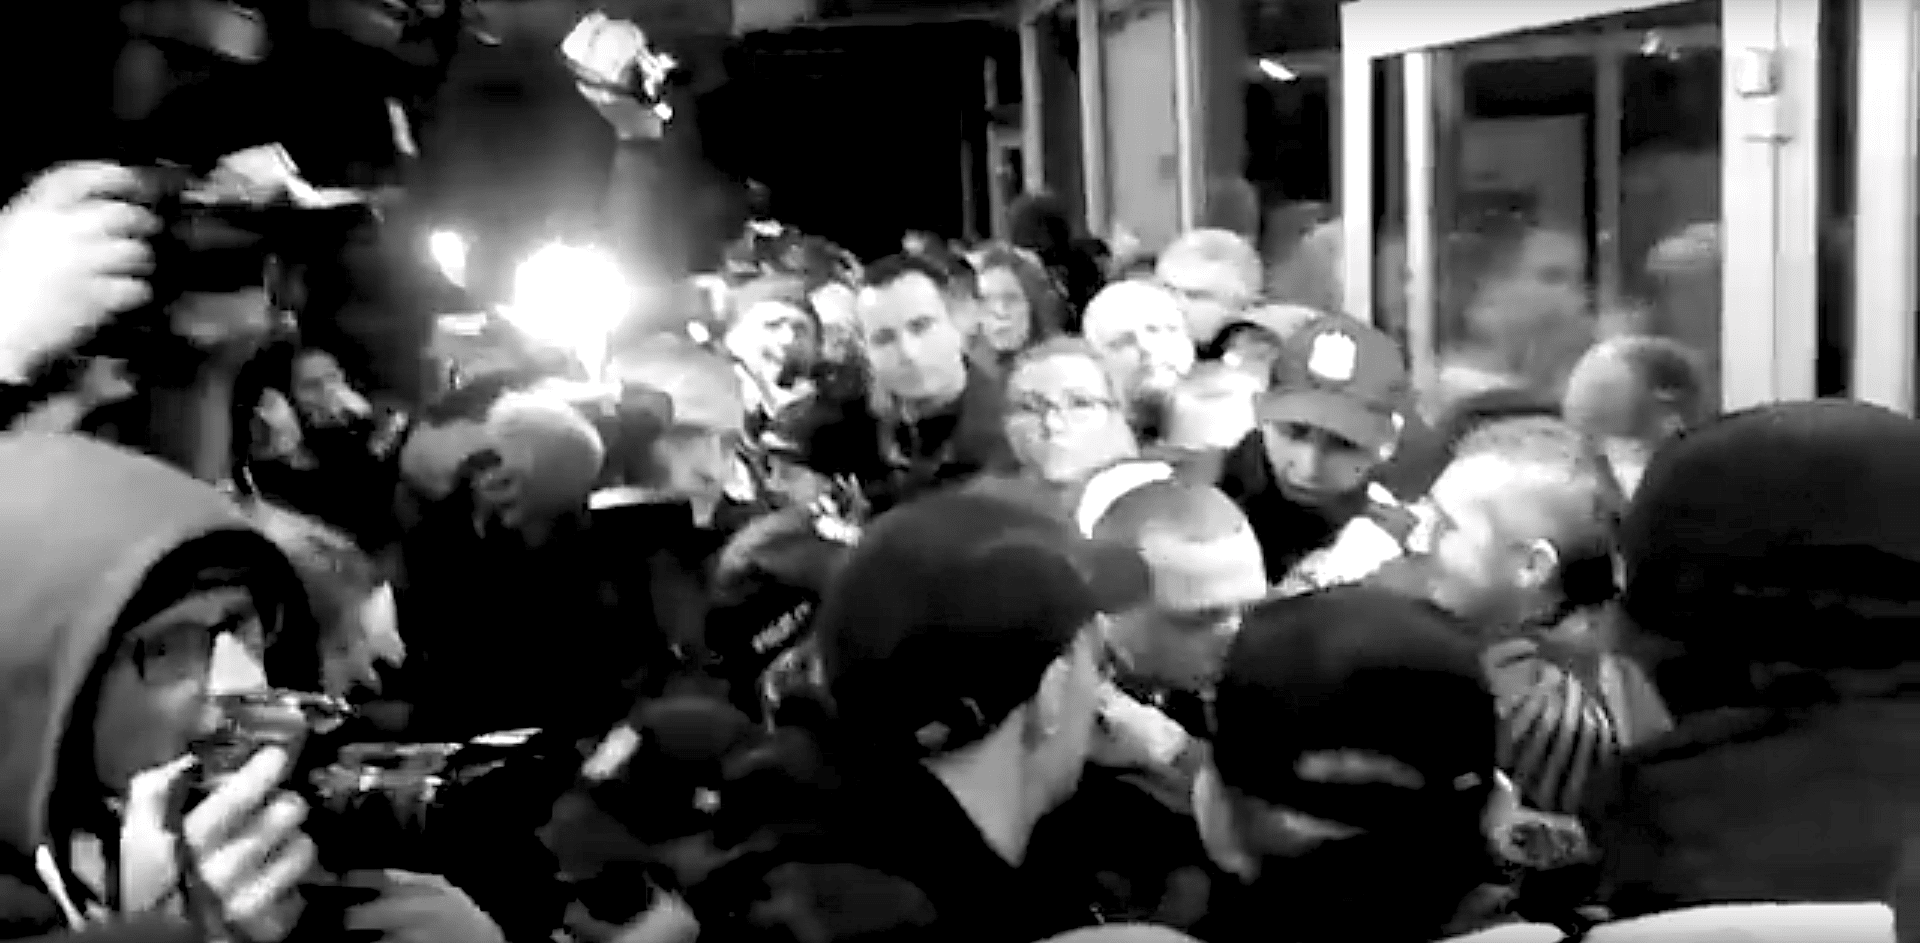 The press captures the protests at Teatr Polski in 2015.